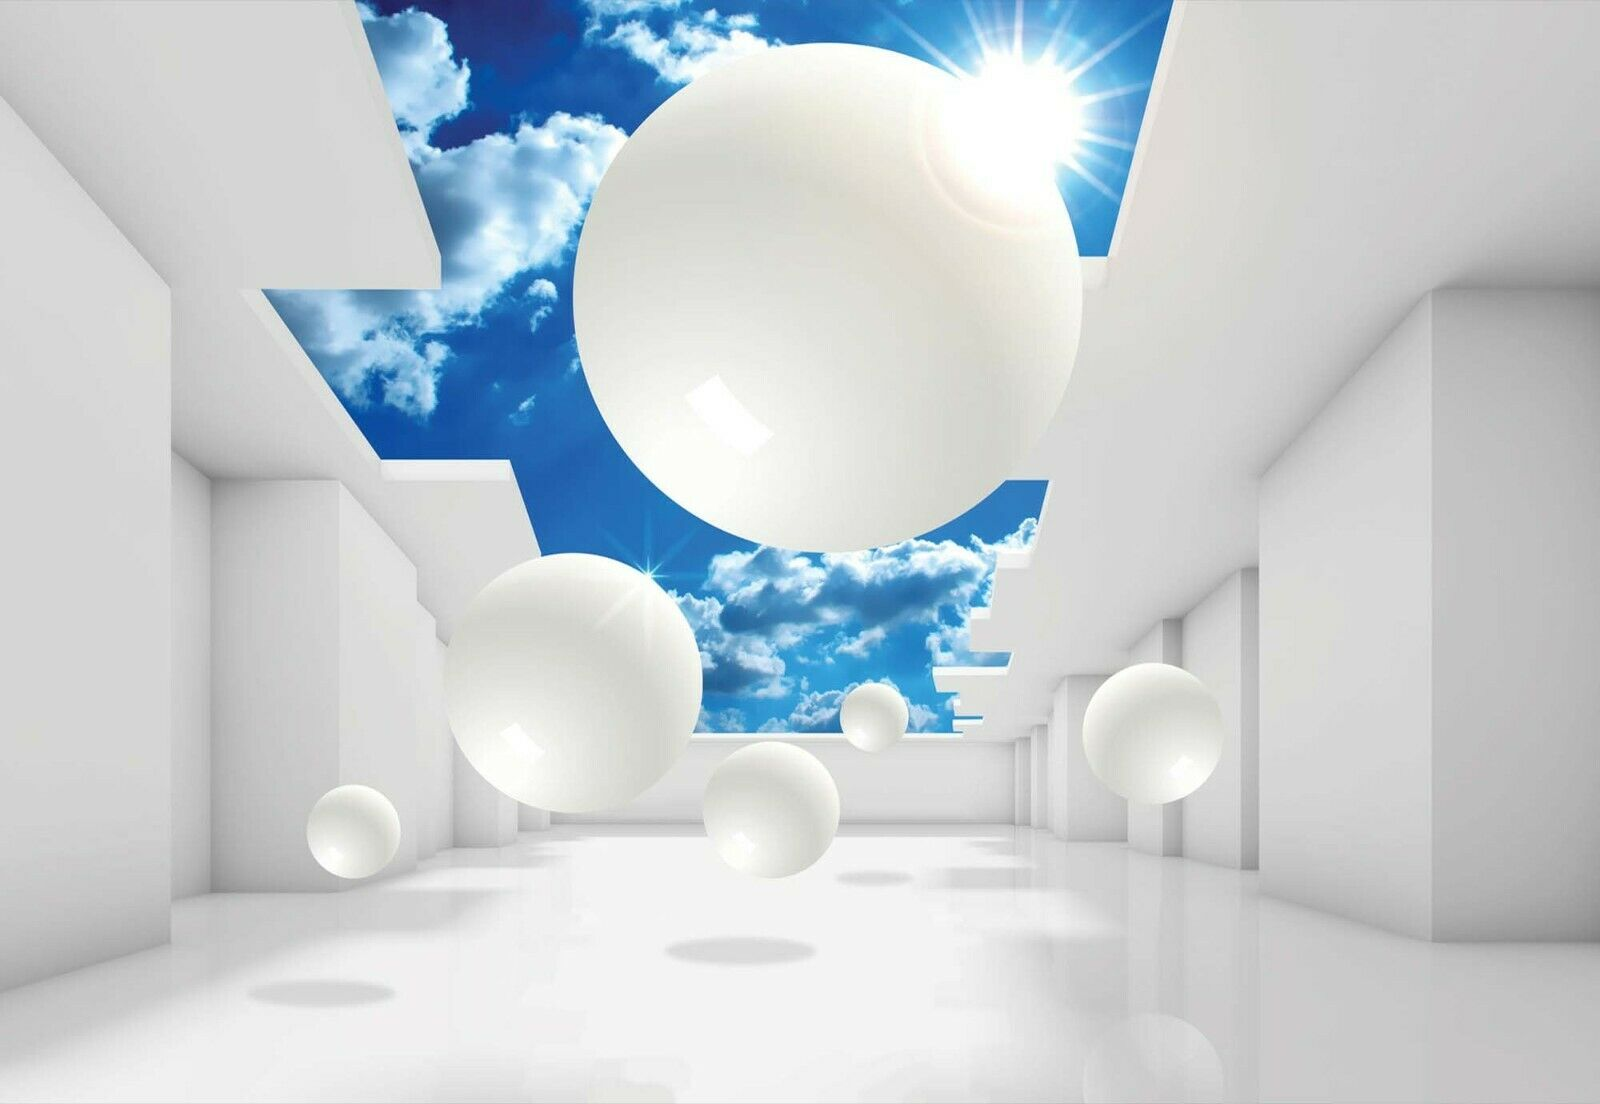 Details About 144x100inch Wall Mural Photo Wallpaper Abstract White & Blue 3D Adhesive